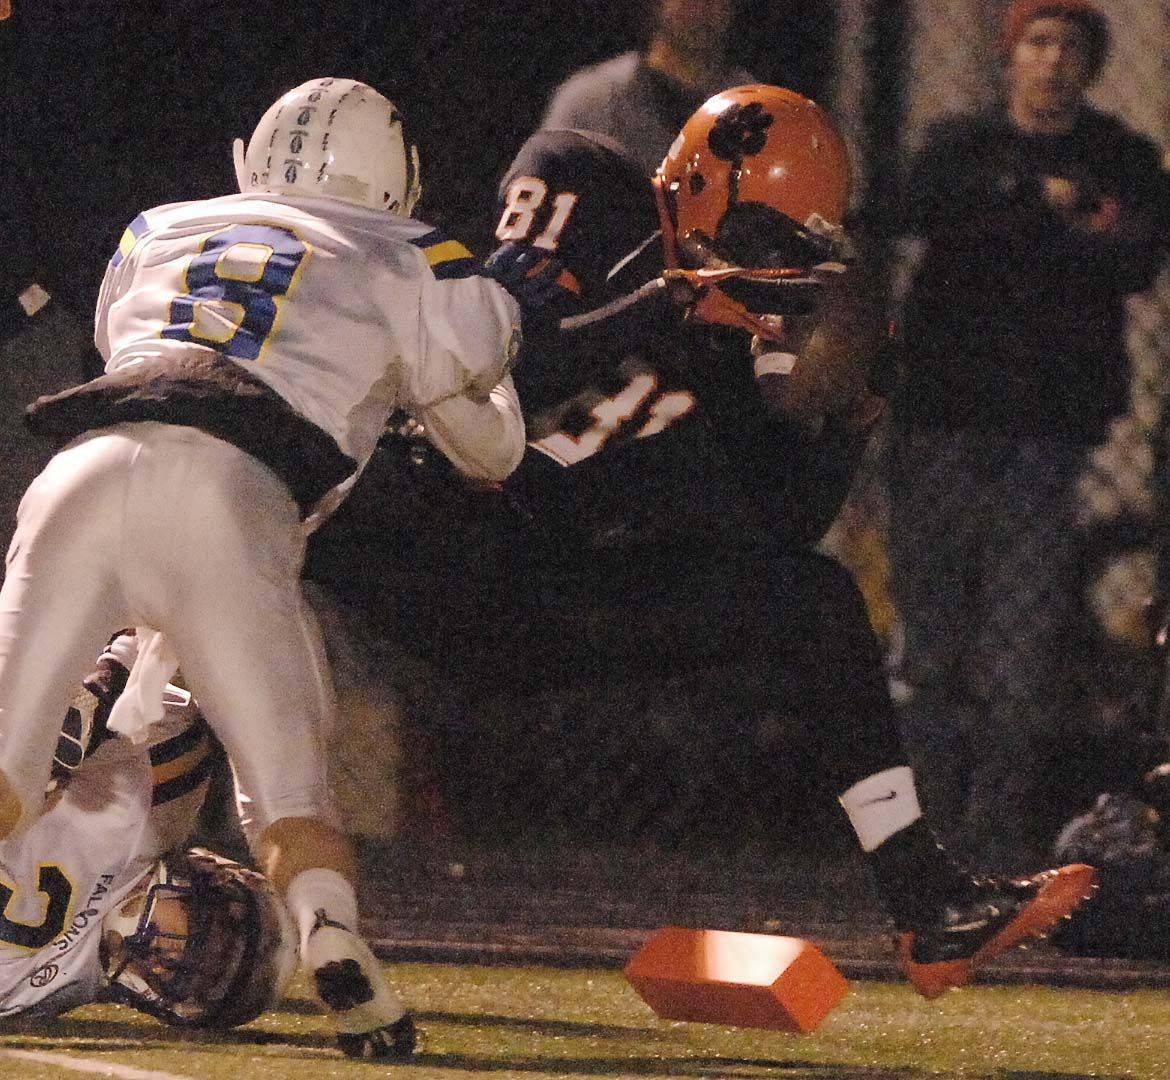 Mike Caponi,left, of Wheaton North tries to stop Titus Davis of Wheaton Warrenville South. This took place during the Wheaton North at Wheaton Warrenville South game Saturday.